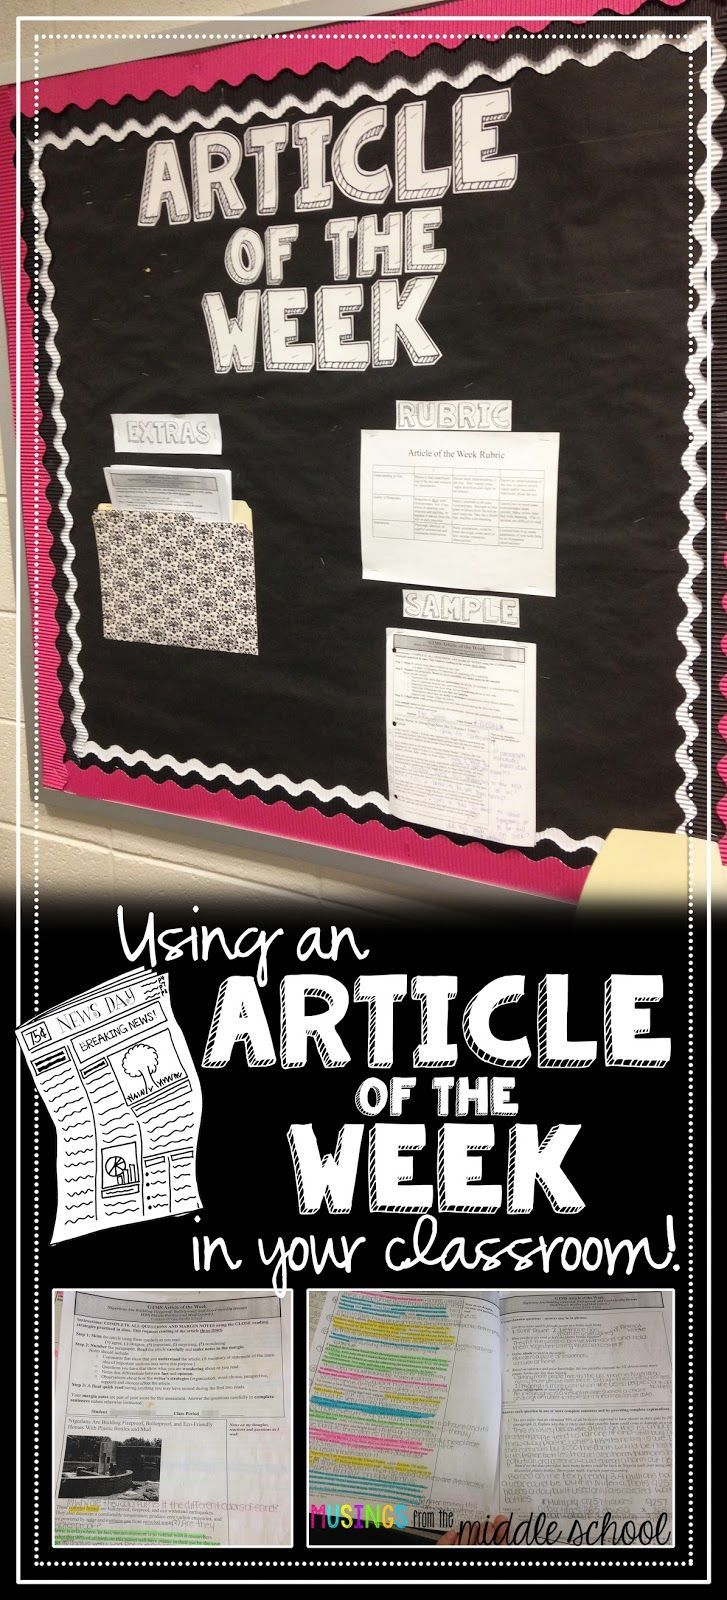 Musings from the Middle School: Article of the Week